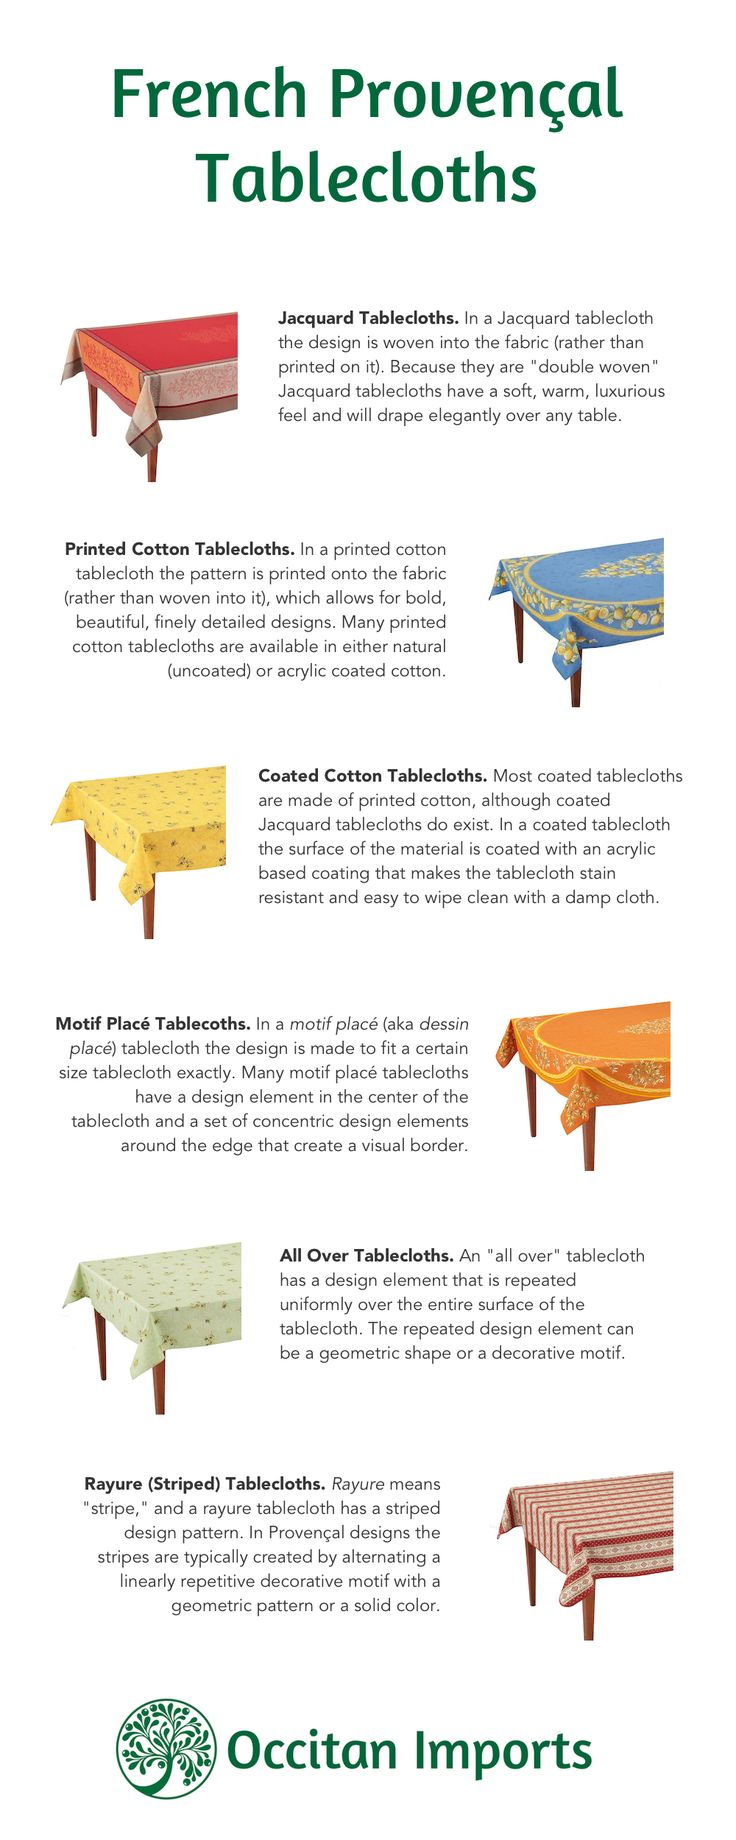 Mini Guide To French Provenal Tablecloths